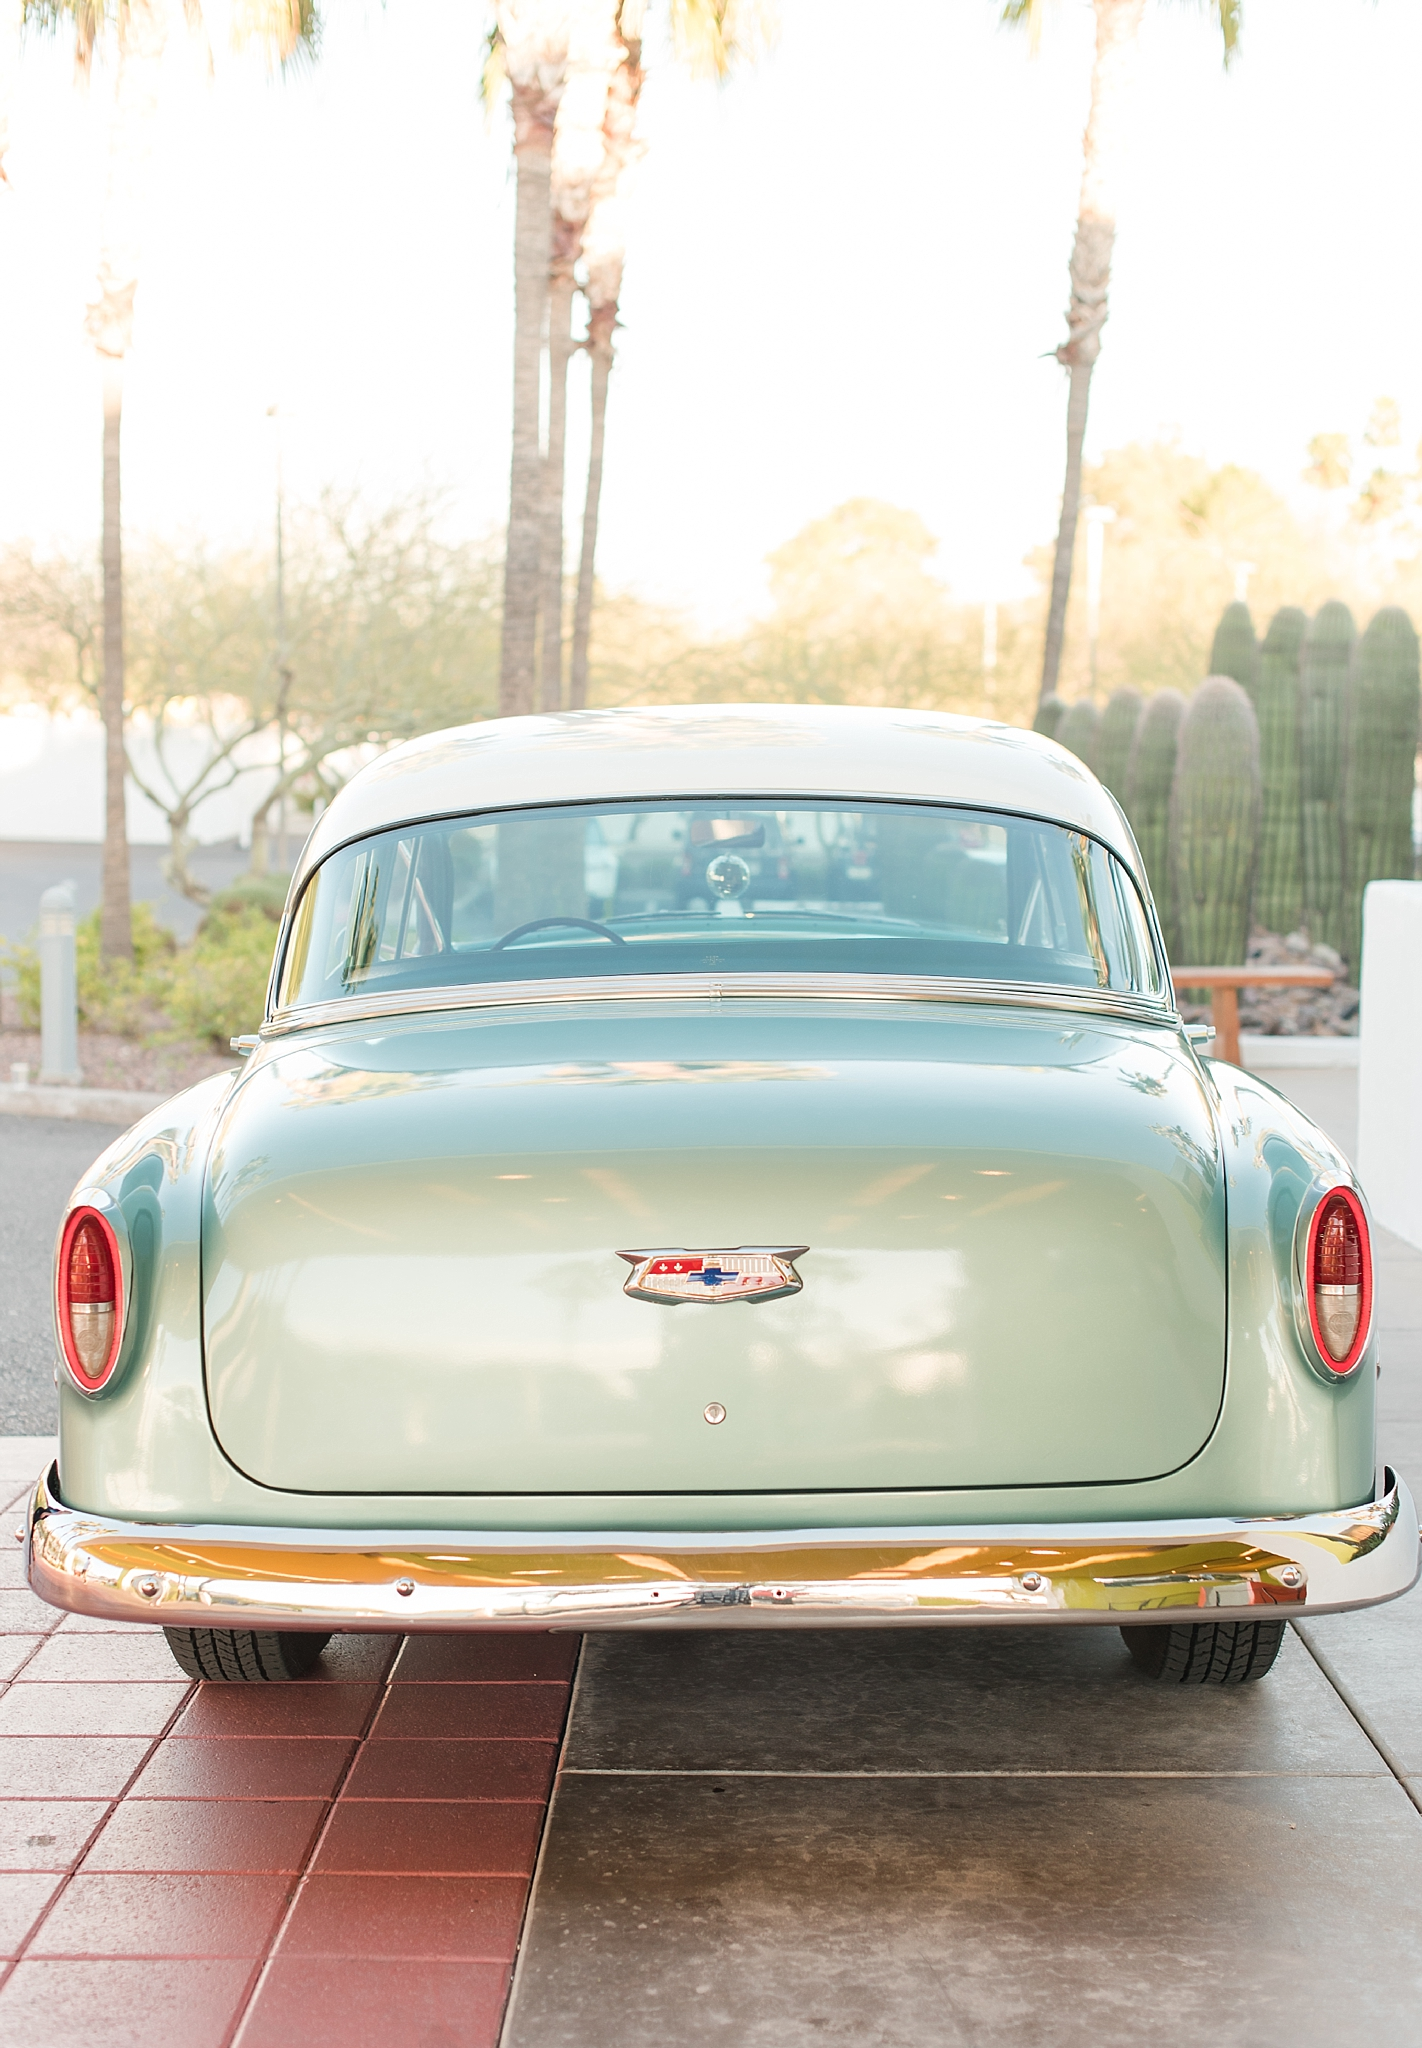 Vintage car provided by Roscoe + Louie. Photos taking by Jade Min Photography at The Saguaro Scottsdale.